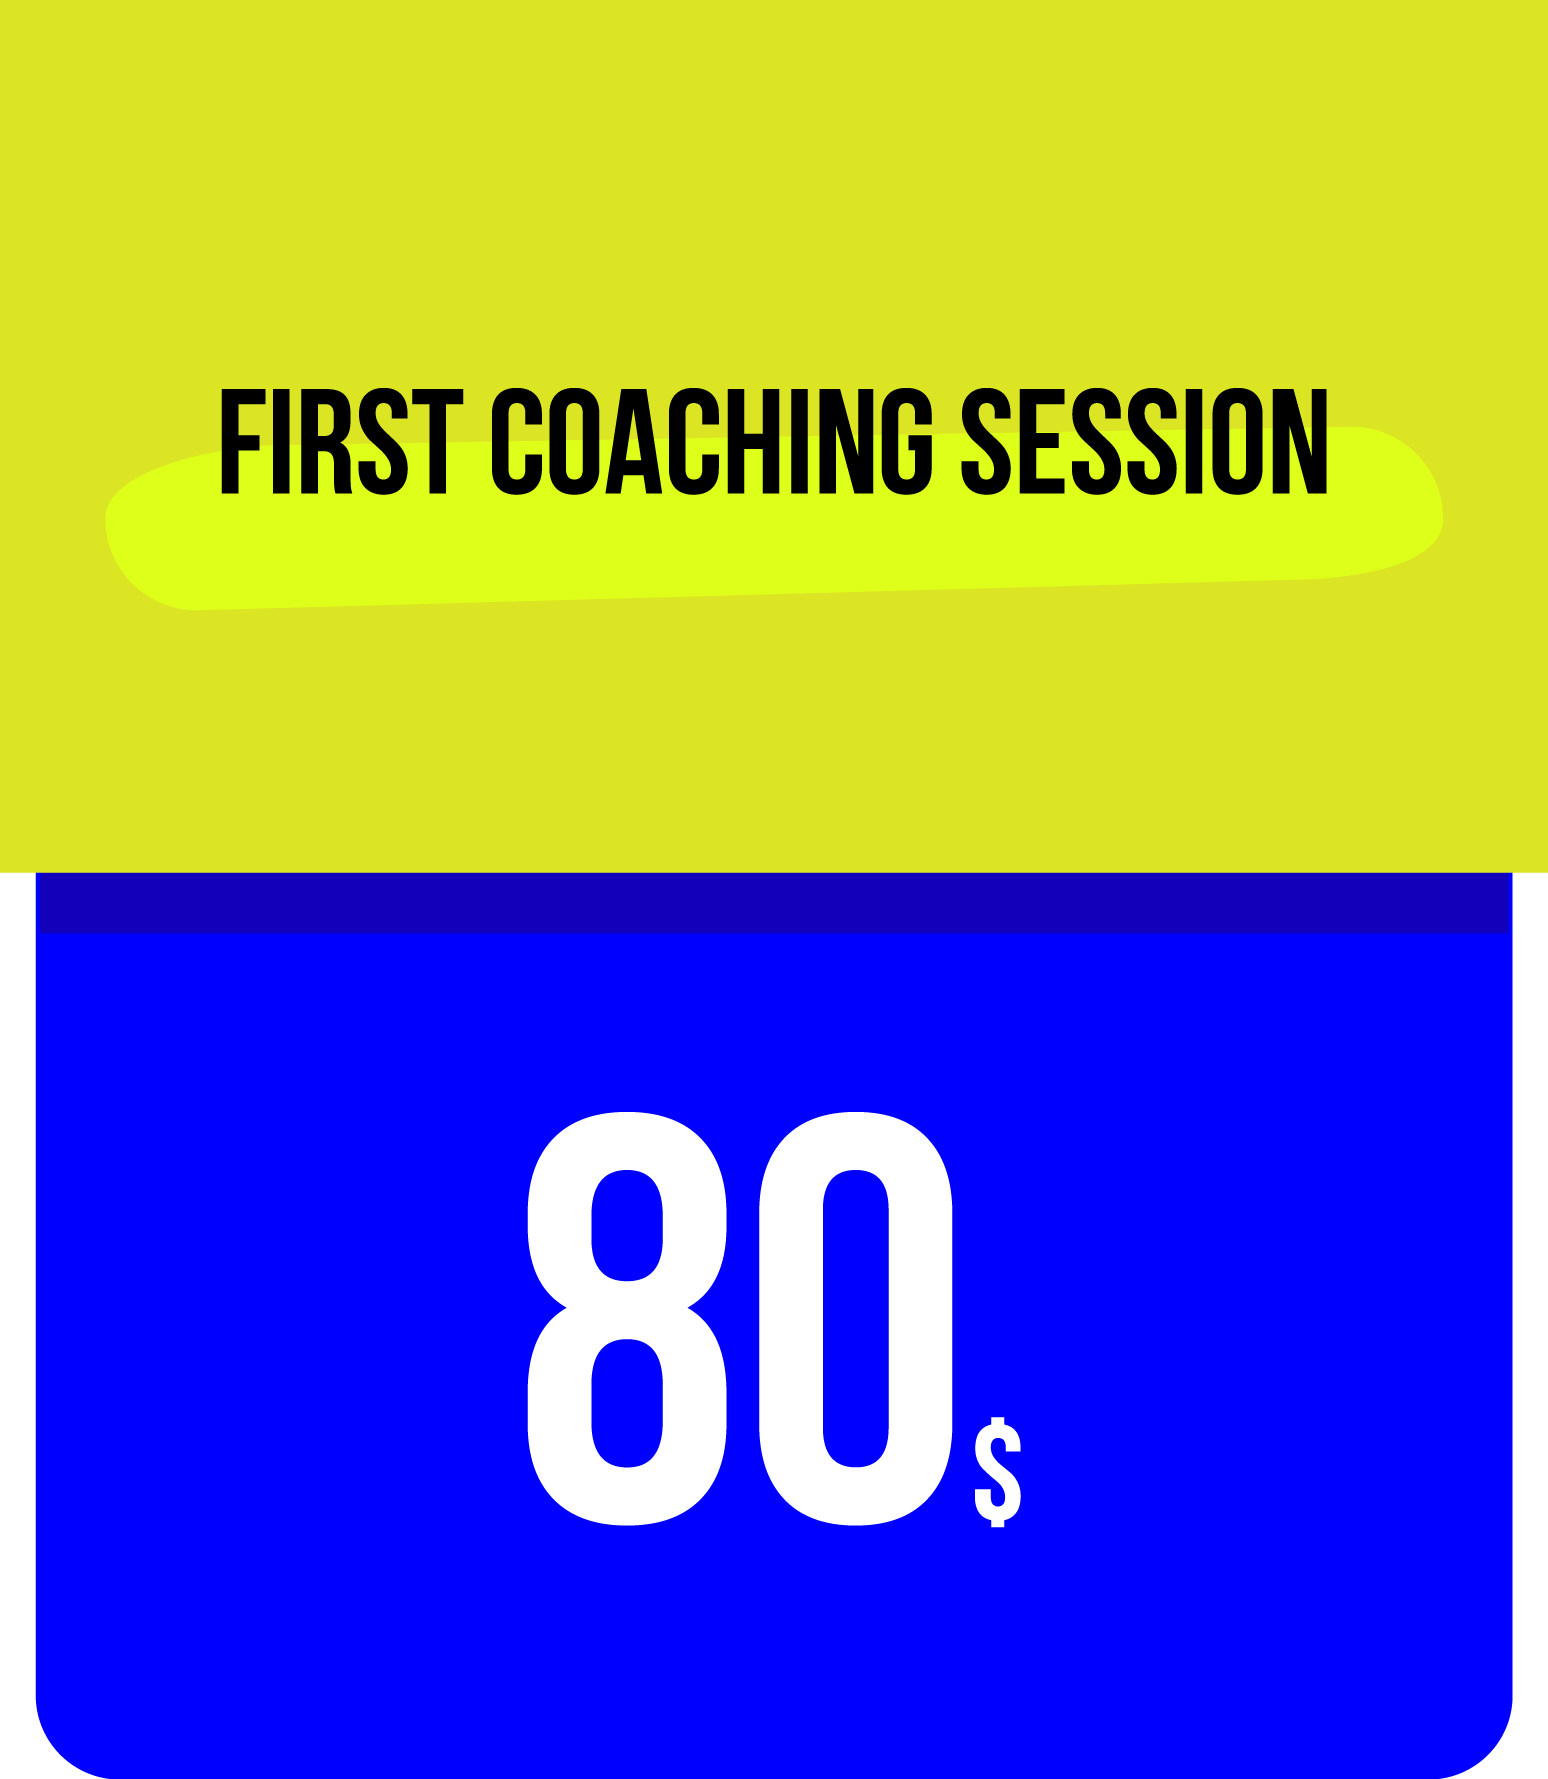 coaching_session1.png